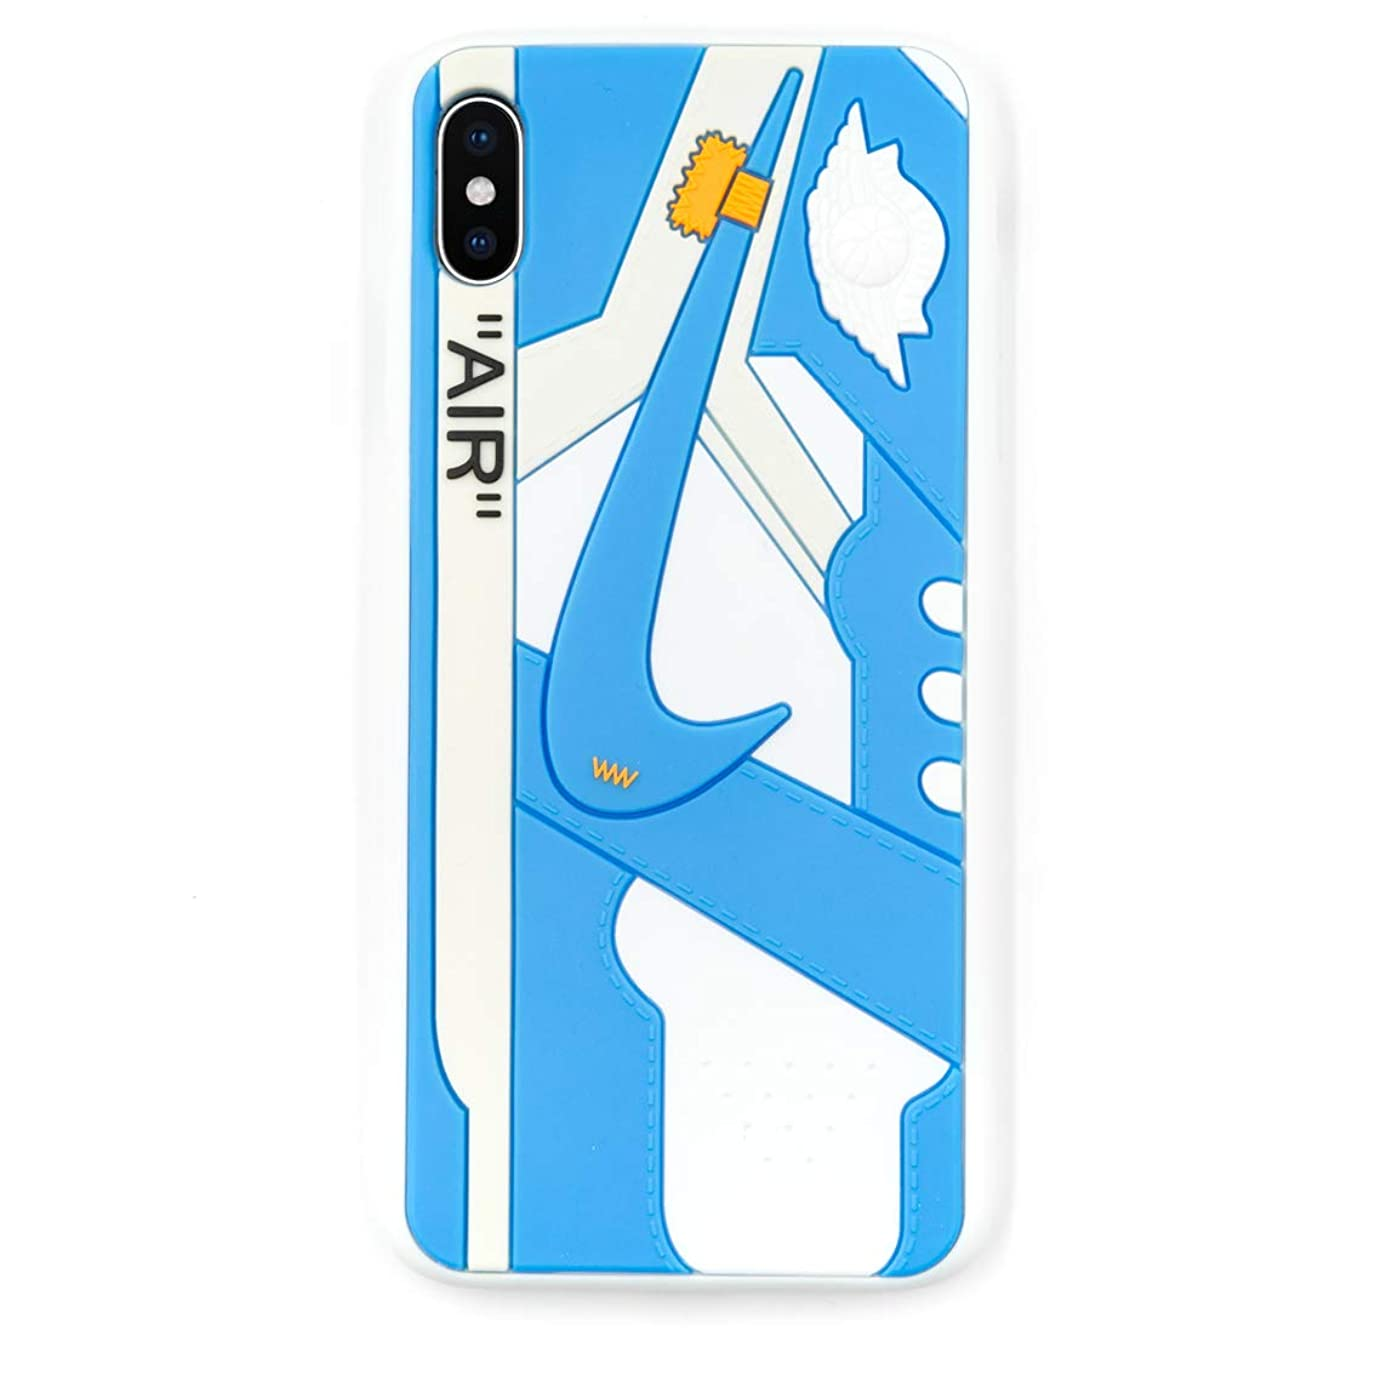 iPhone Shoe Case Chicago/White 1's Official 3D Print Textured Shock Absorbing Protective Sneaker Fashion Case (iPhone 7+/8+)